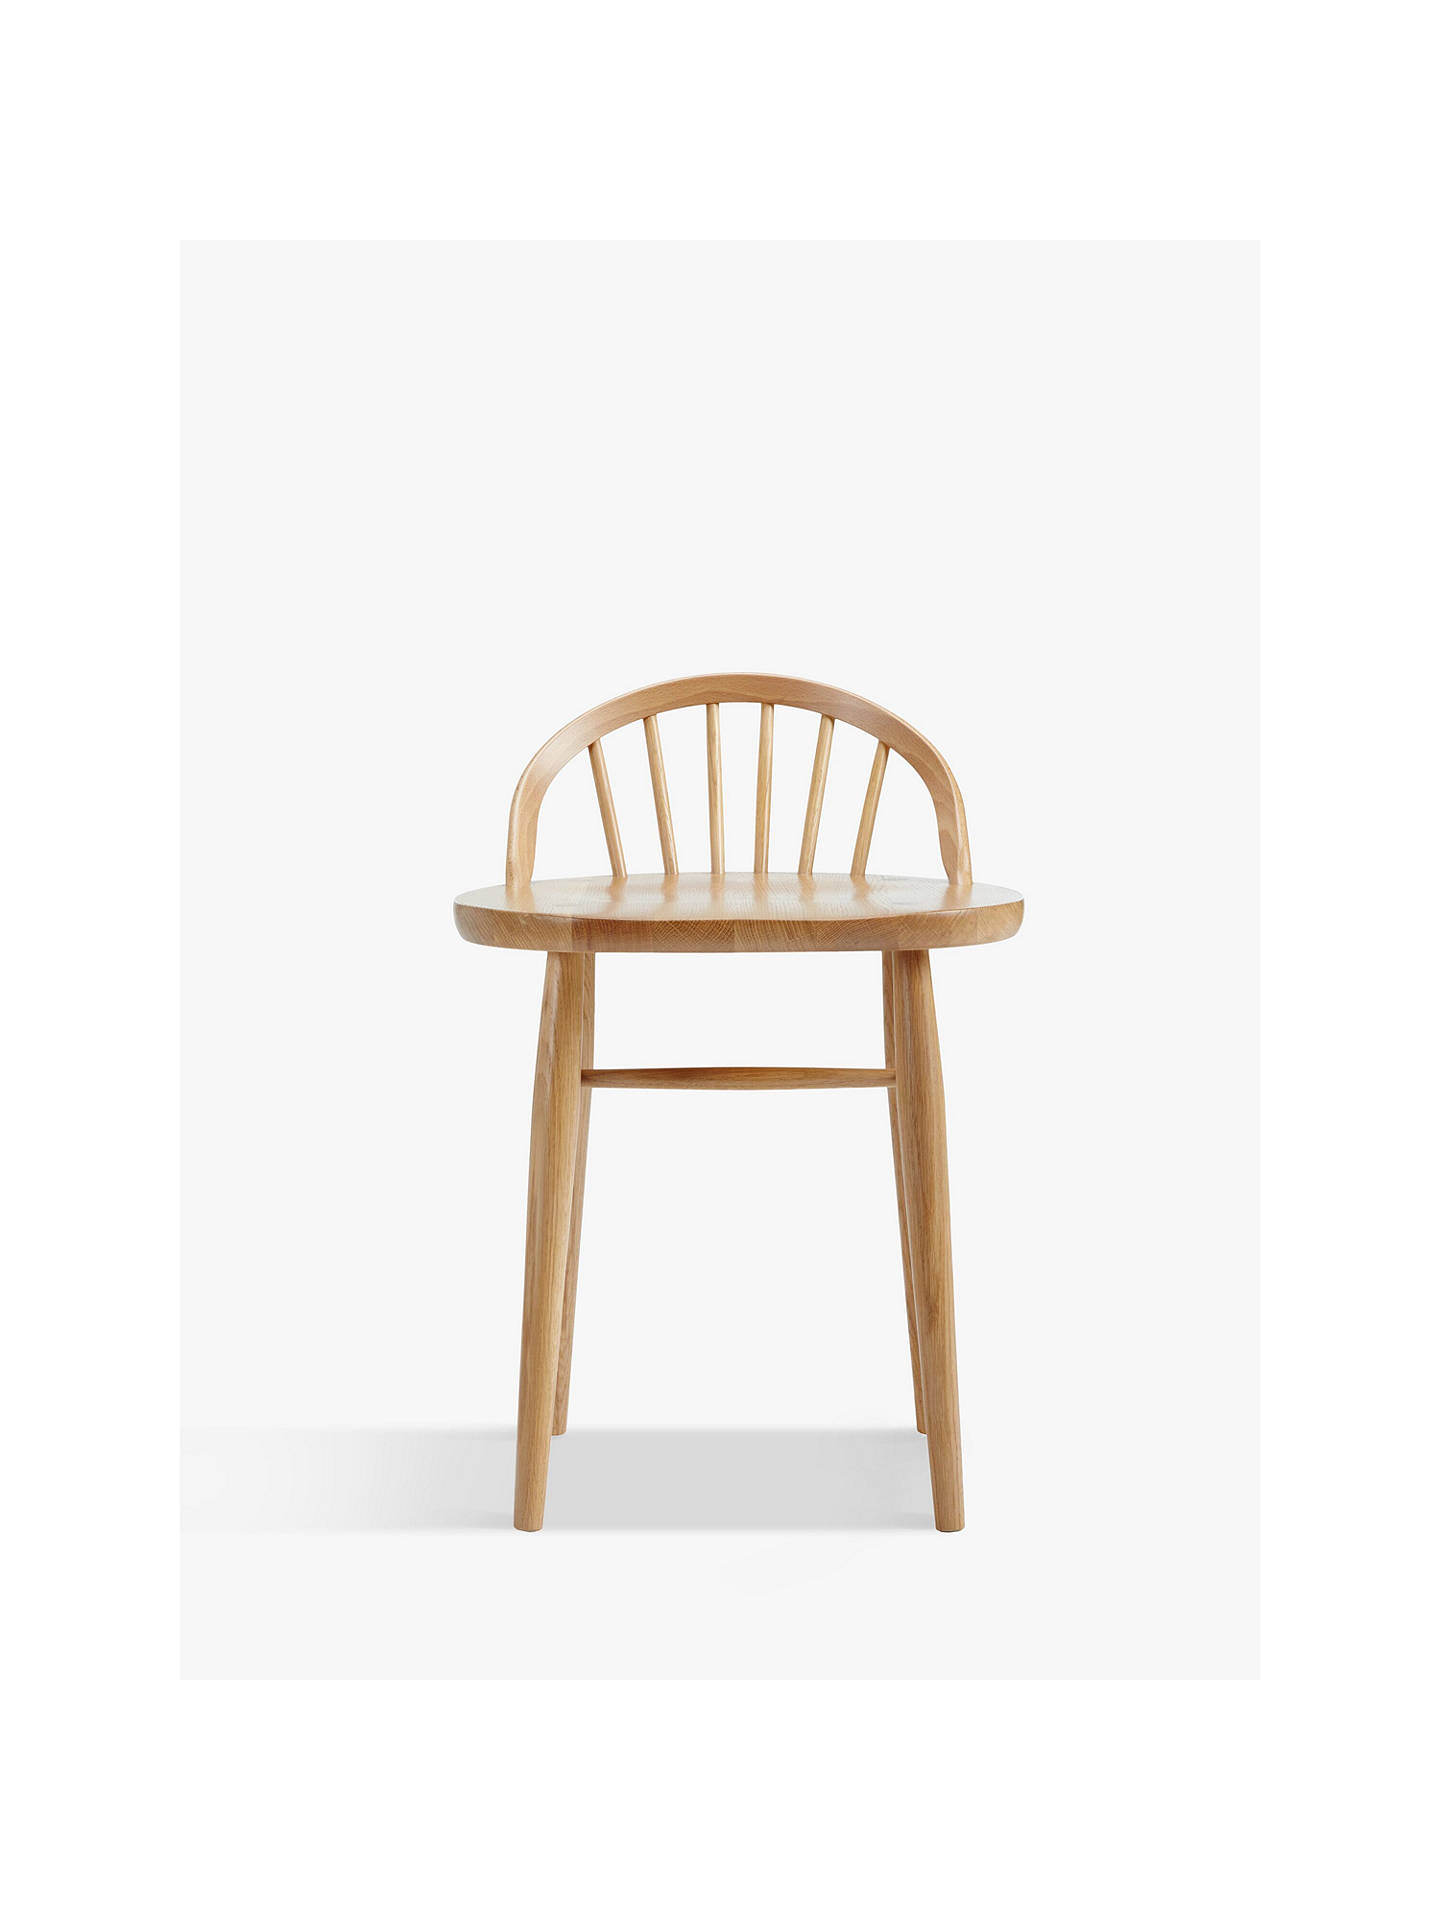 Buy ercol for John Lewis Shalstone Dressing Table Chair, Oak Online at johnlewis.com